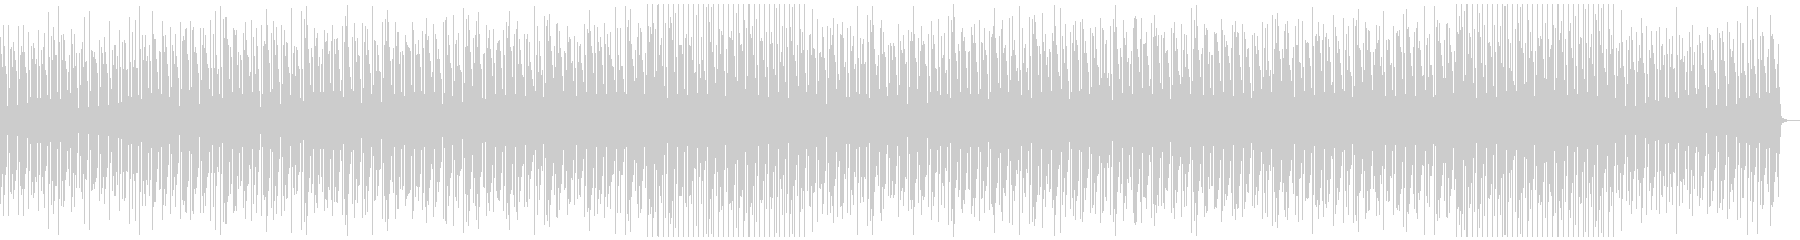 Refreshing and vigorous acoustic for corporate VP's unreproduced waveform